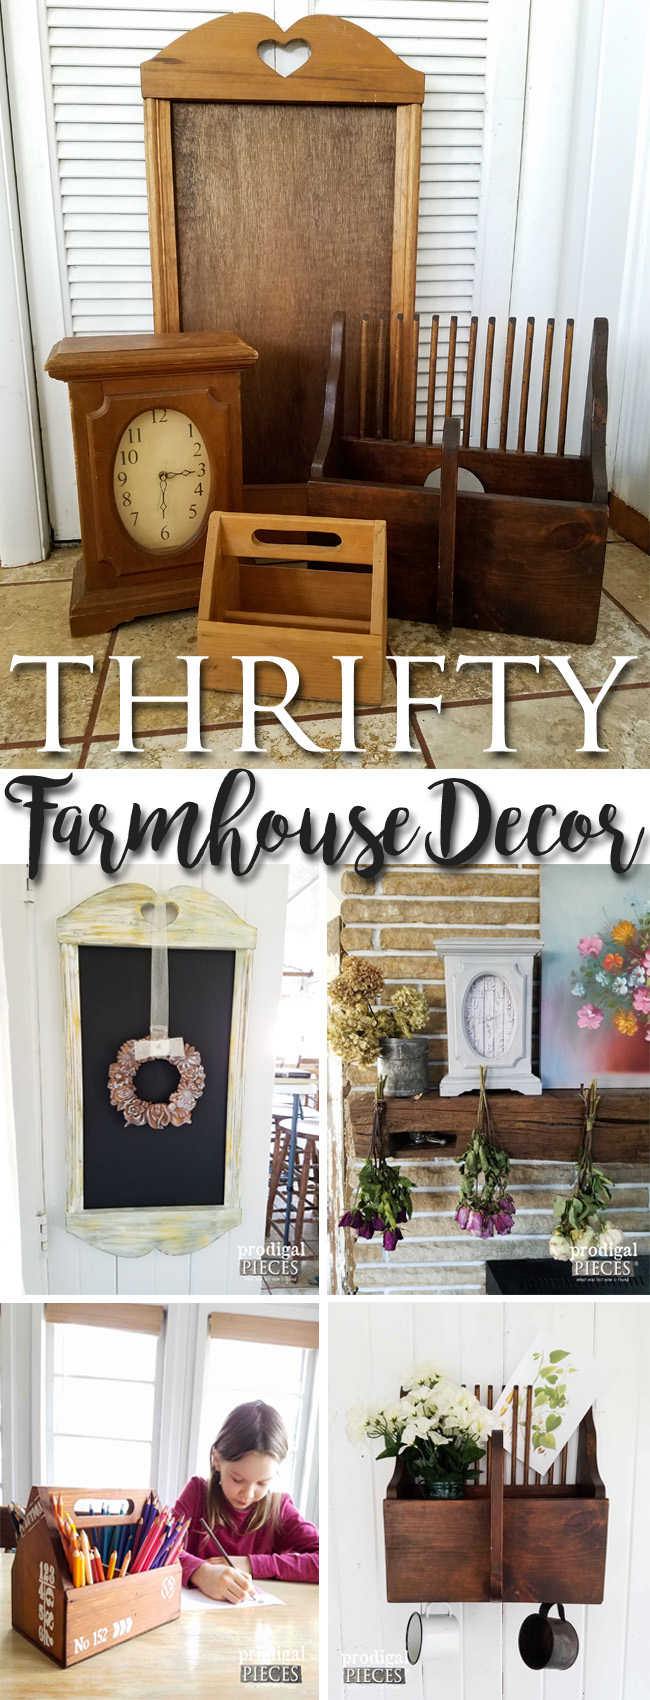 Thrifty farmhouse decor budget style decorating for Thrifty decor